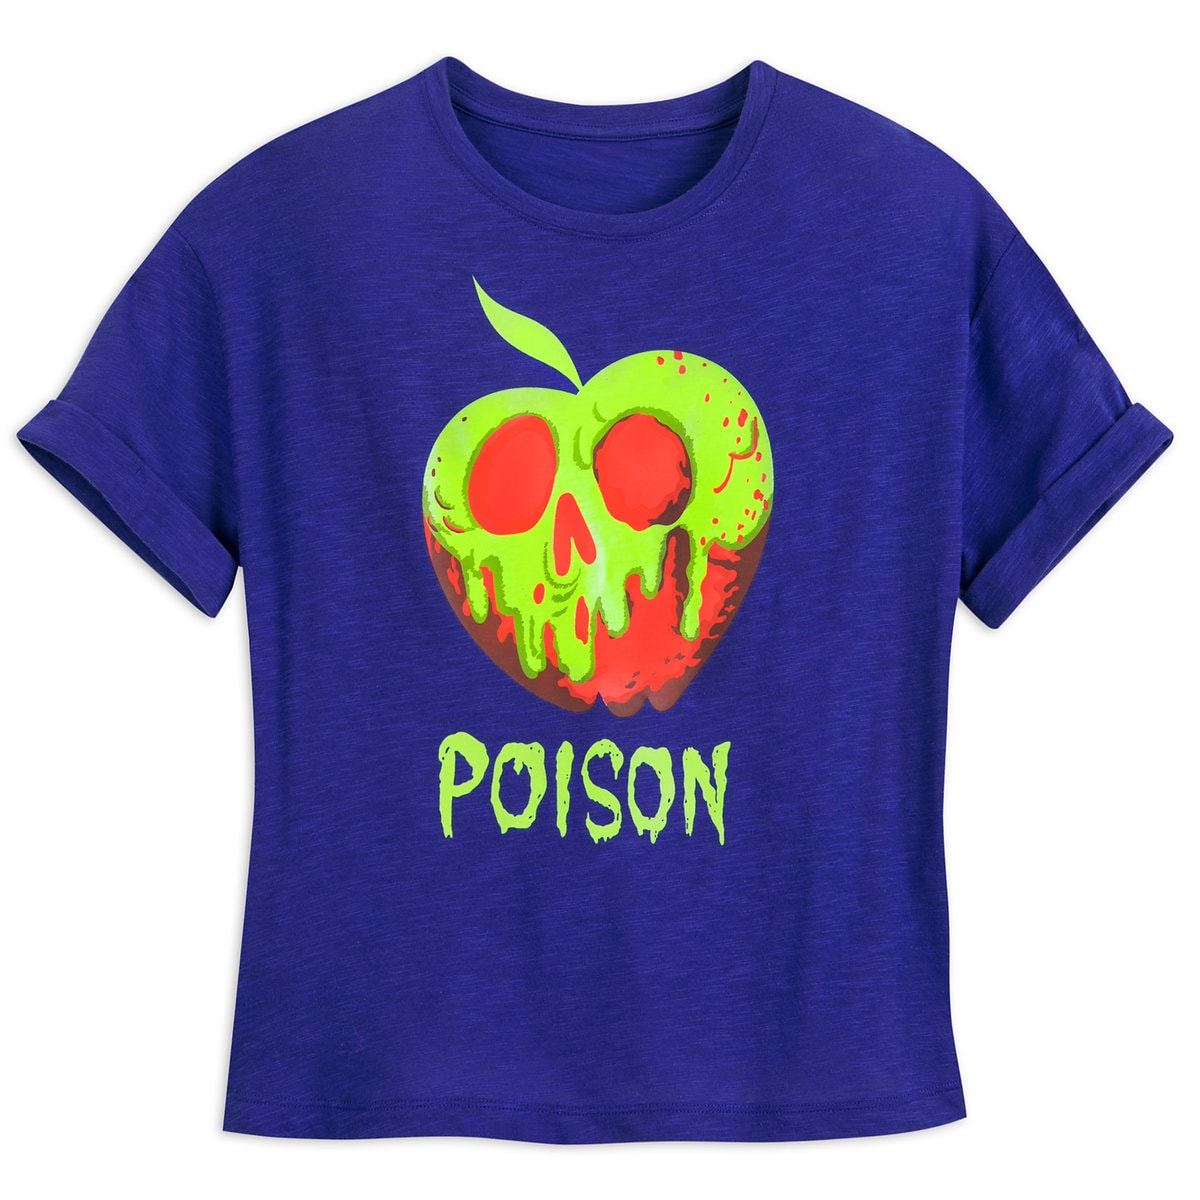 b0aee440b Product Image of Poisoned Apple T-Shirt for Women - Ralph Breaks the  Internet #